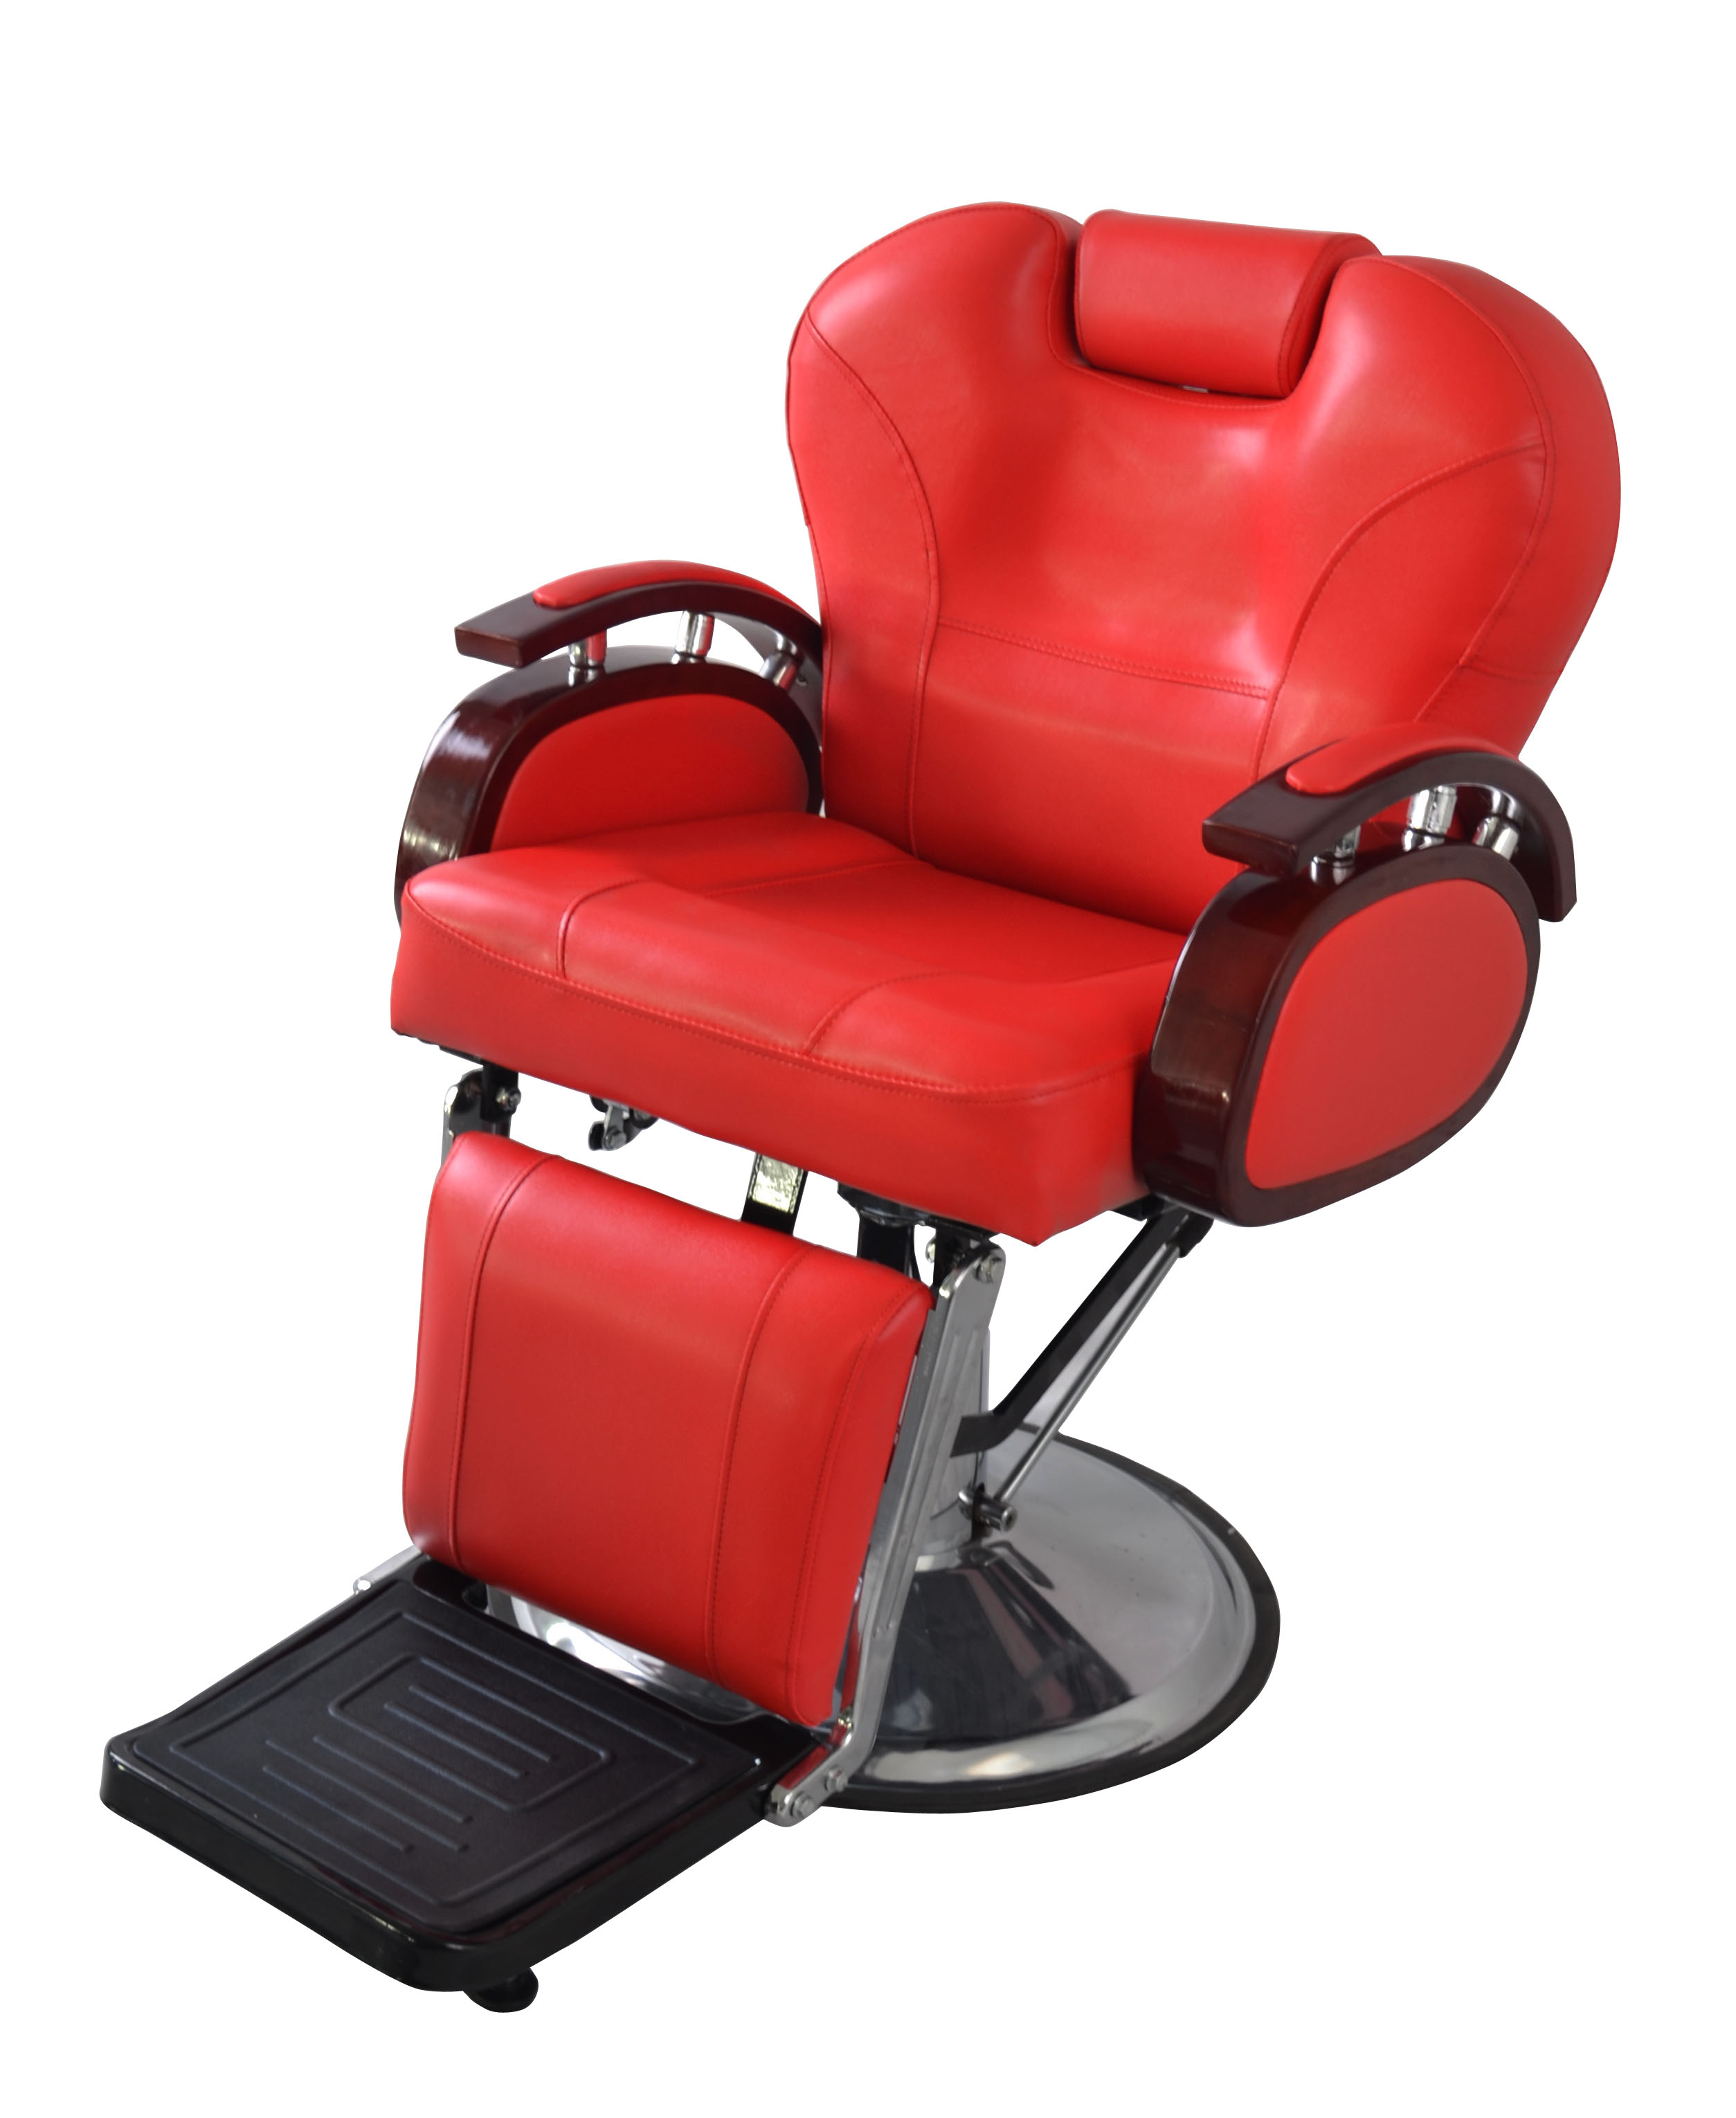 Red Barber Chairs – Home Image Ideas